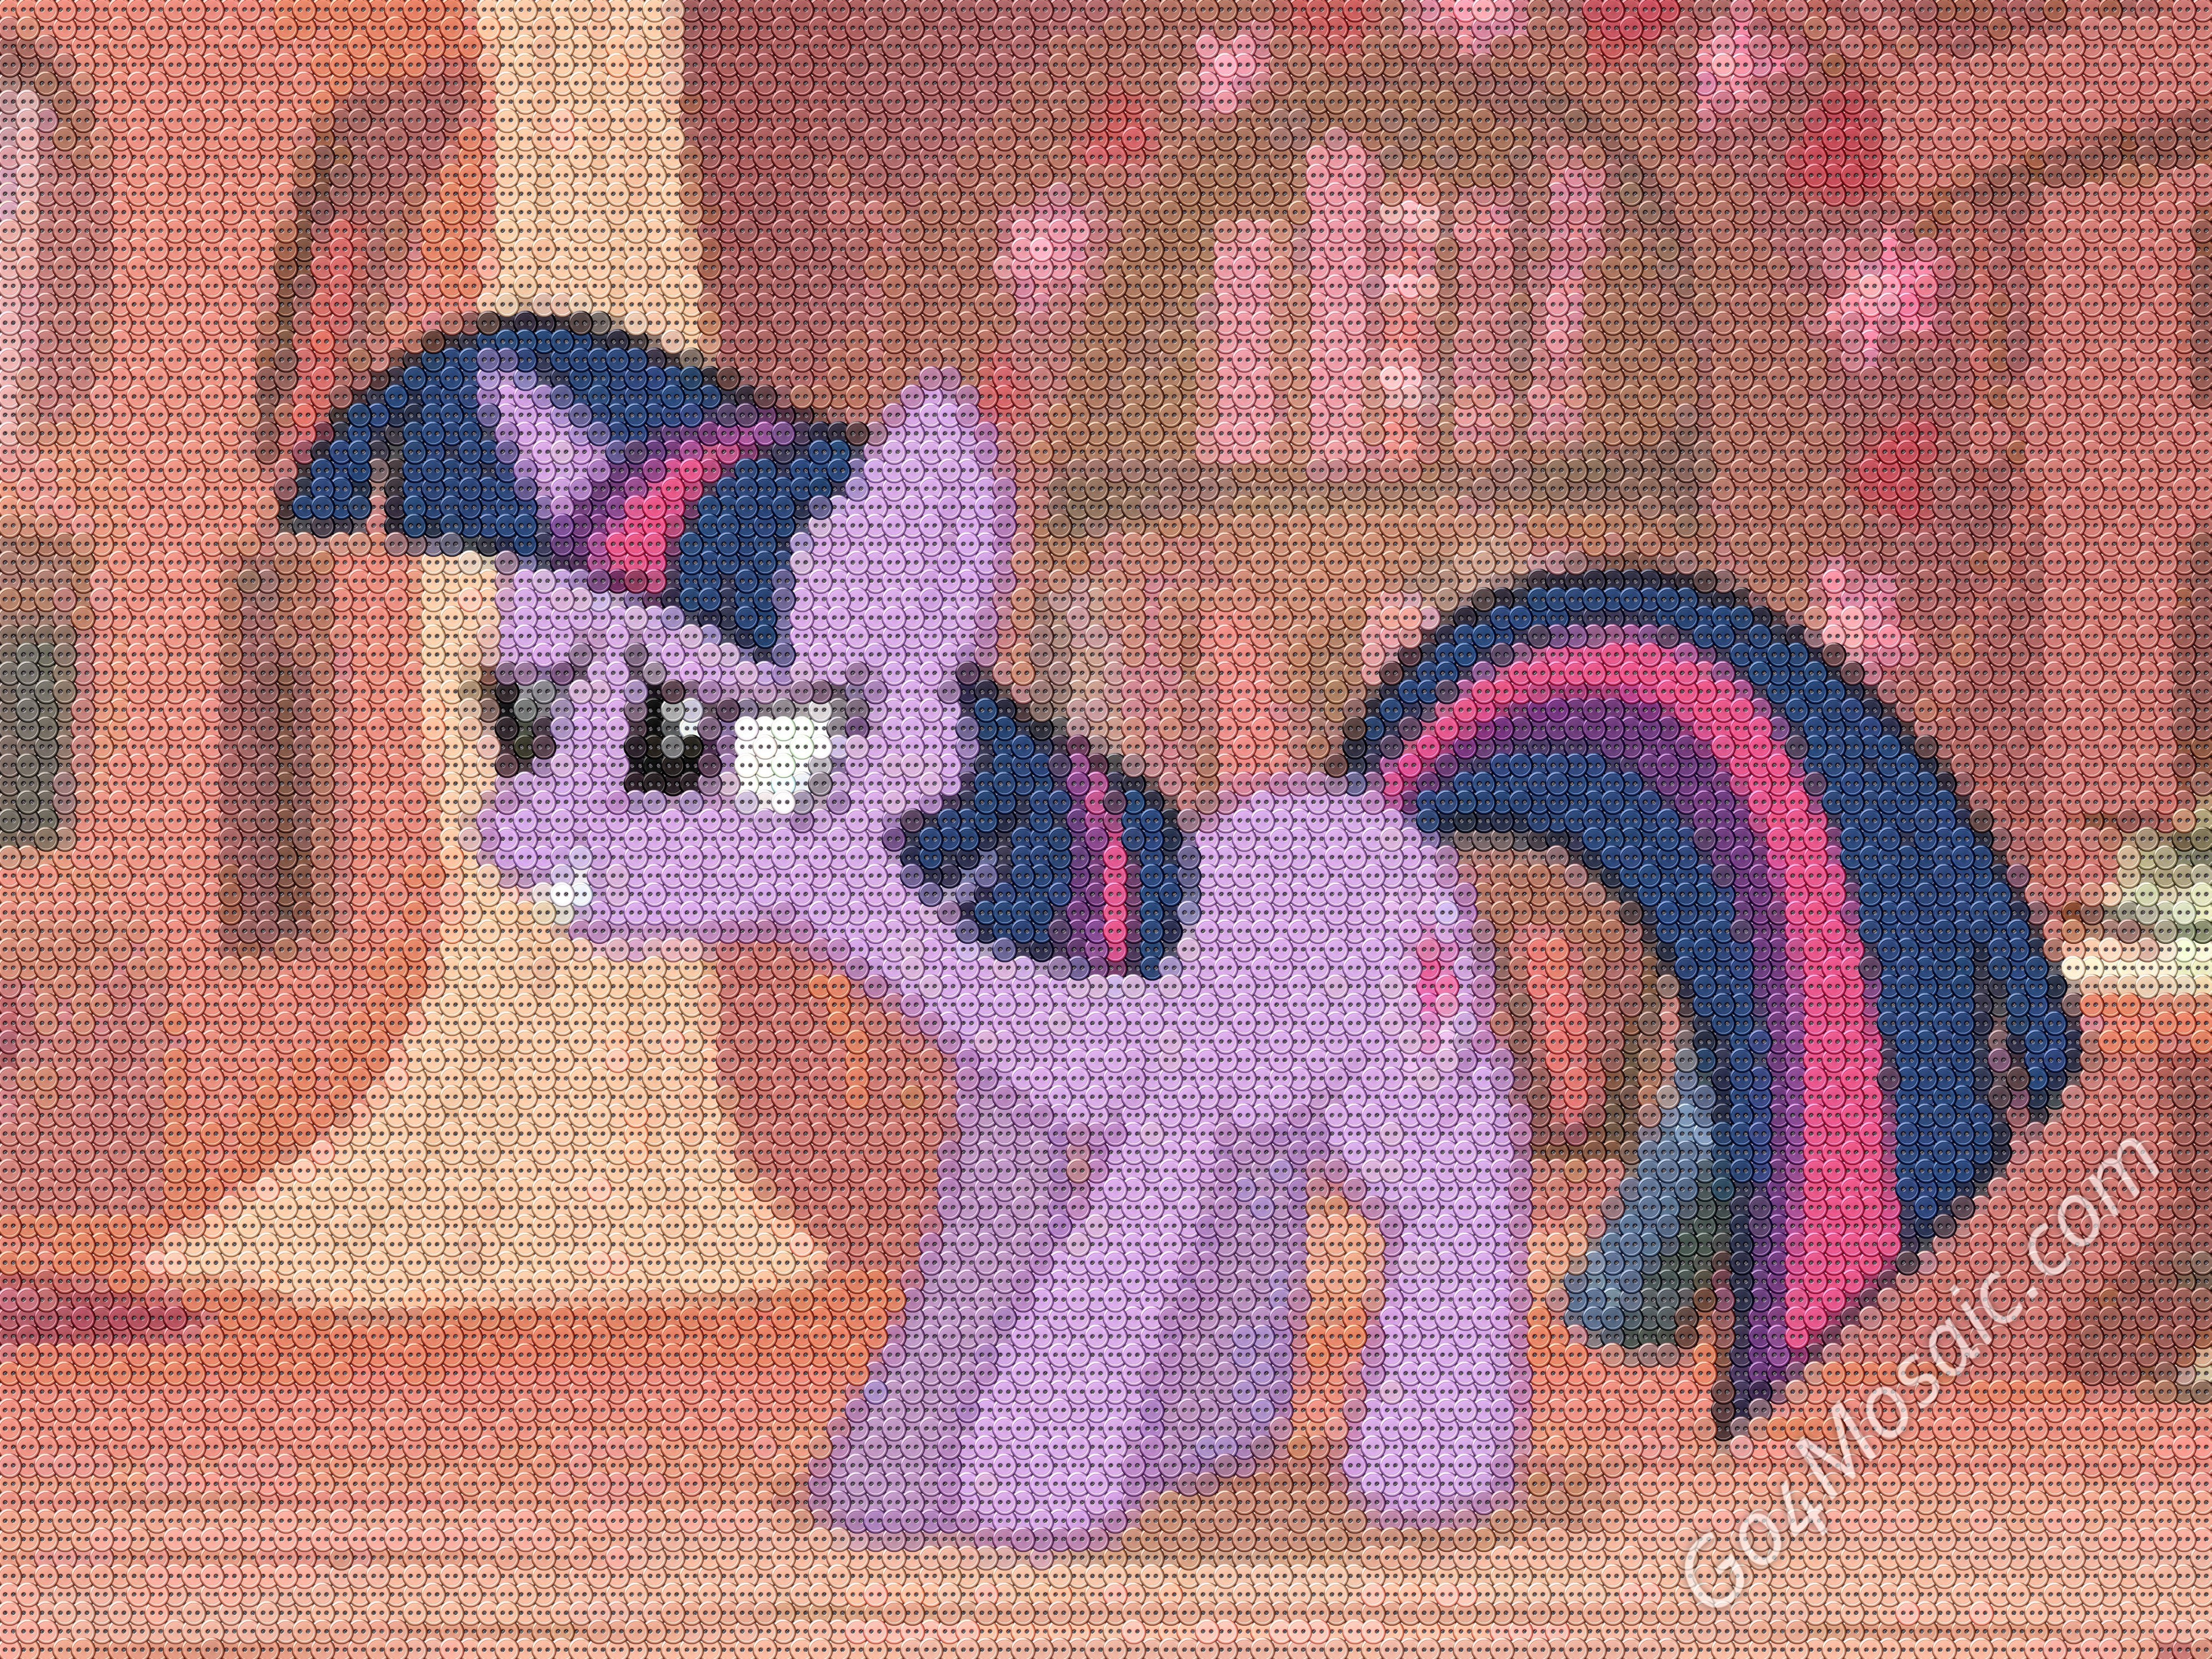 My Little Pony: Twilight Sparkle mosaic from Buttons